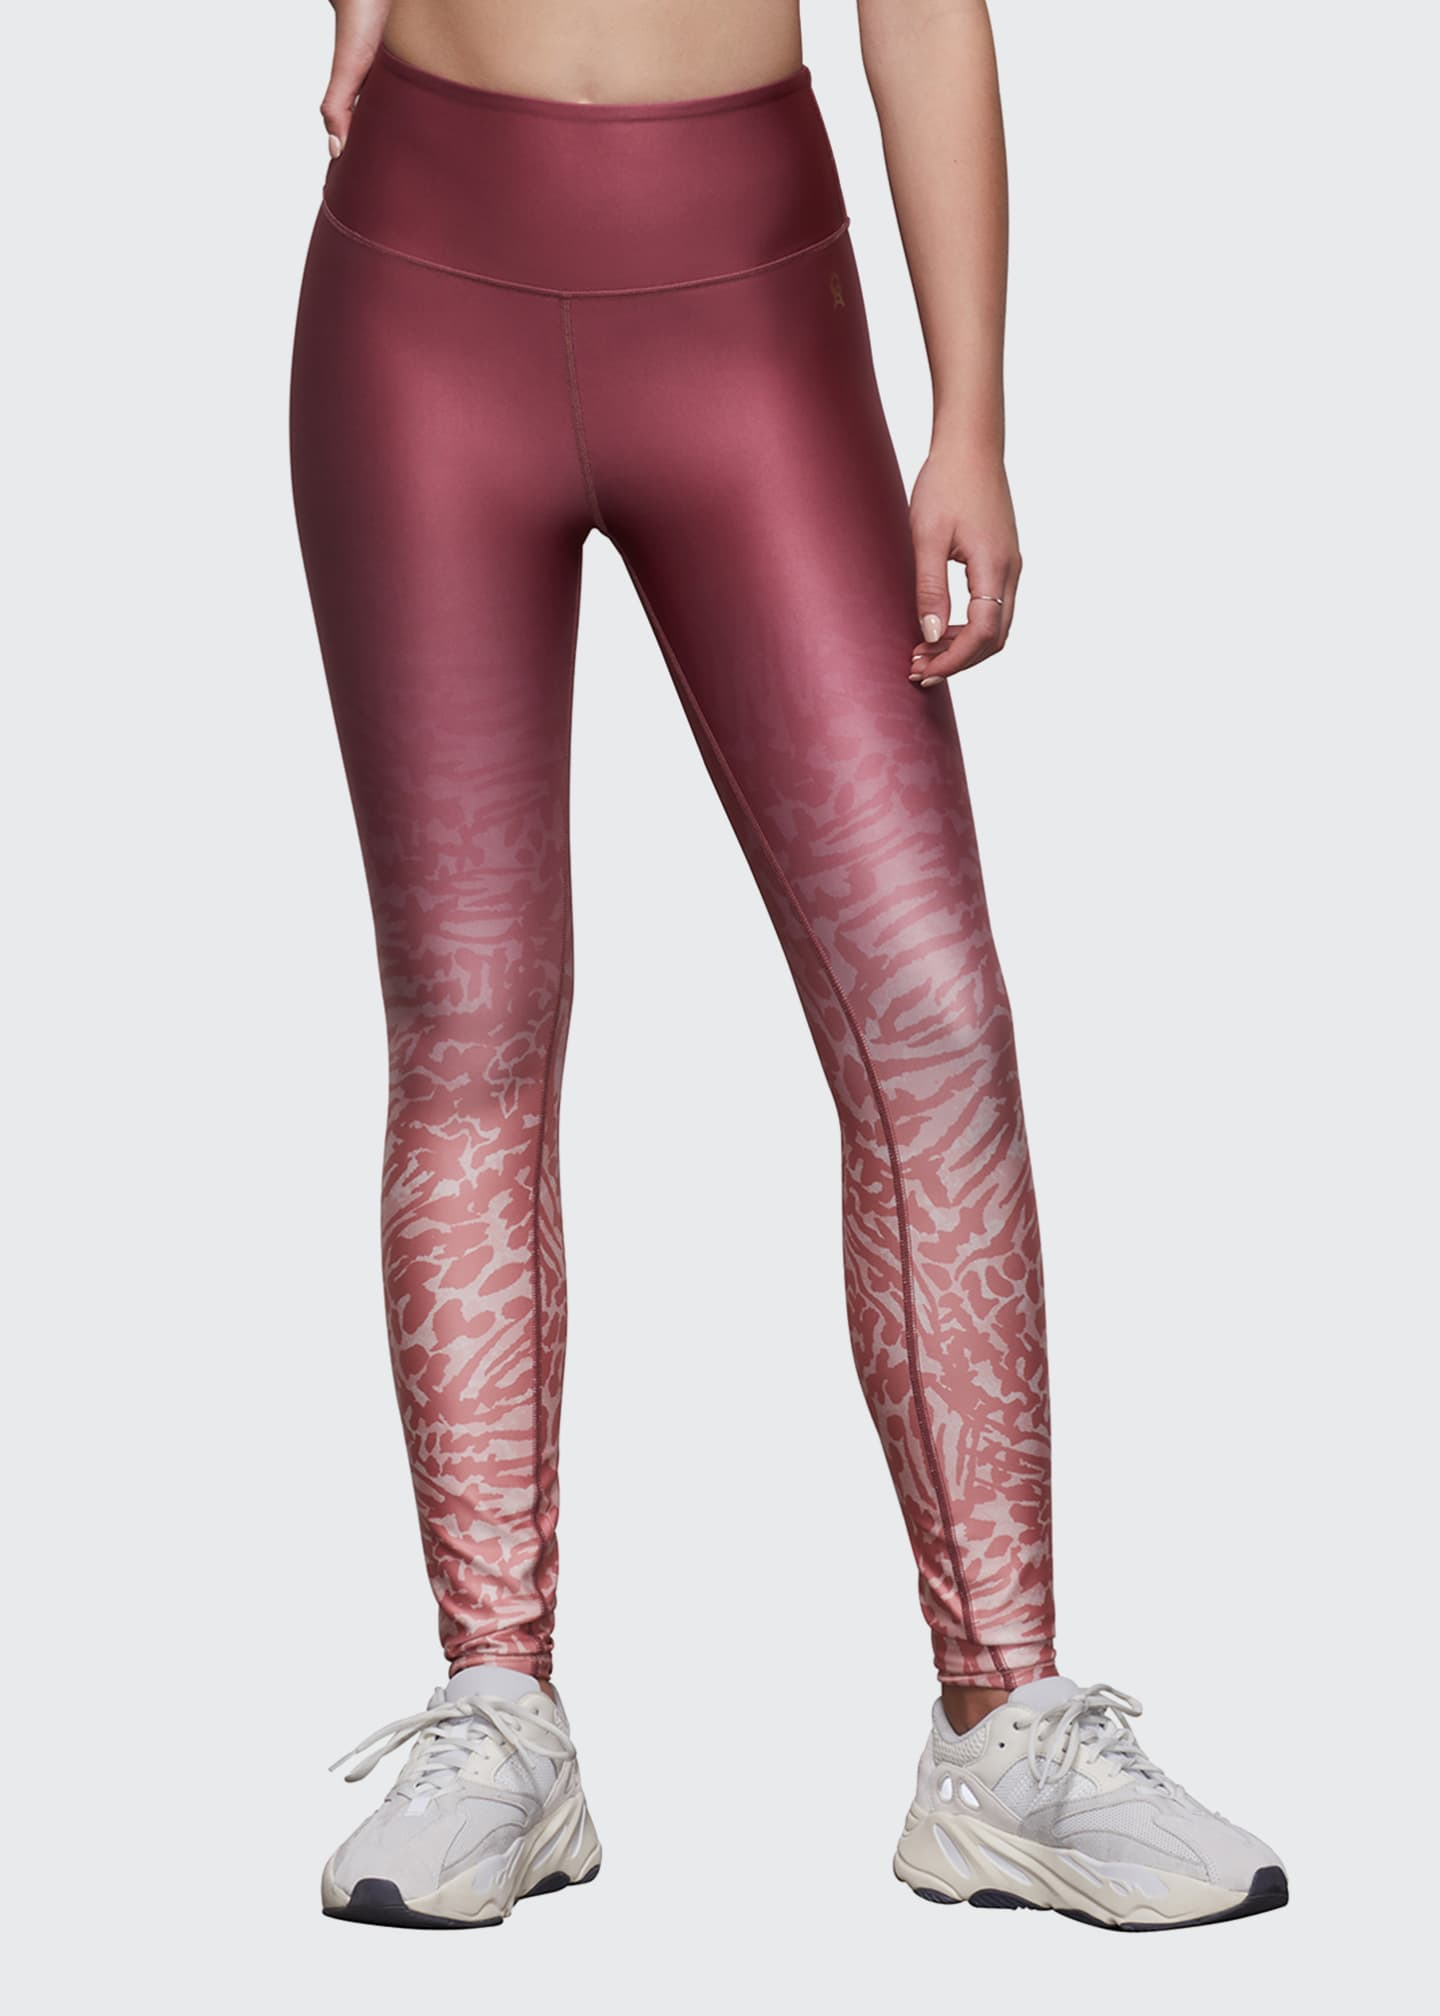 Image 1 of 3: Ombre Printed Leggings - Inclusive Sizing